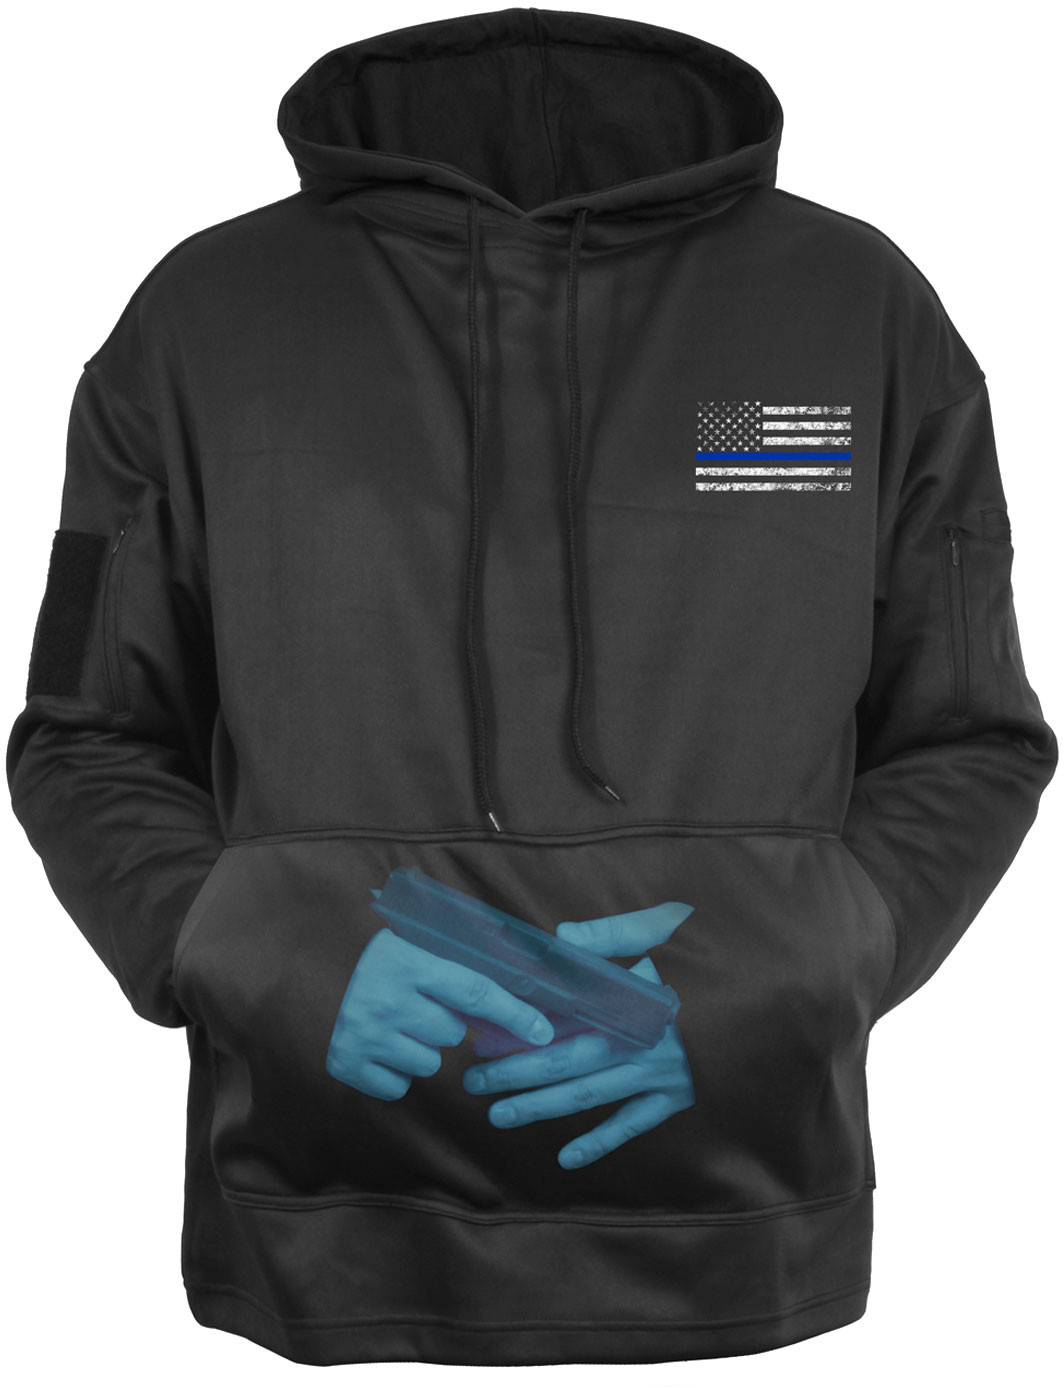 ... Black Concealed Carry Thin Blue Line Tactical Hoodie Sweatshirt ebdf701d30b